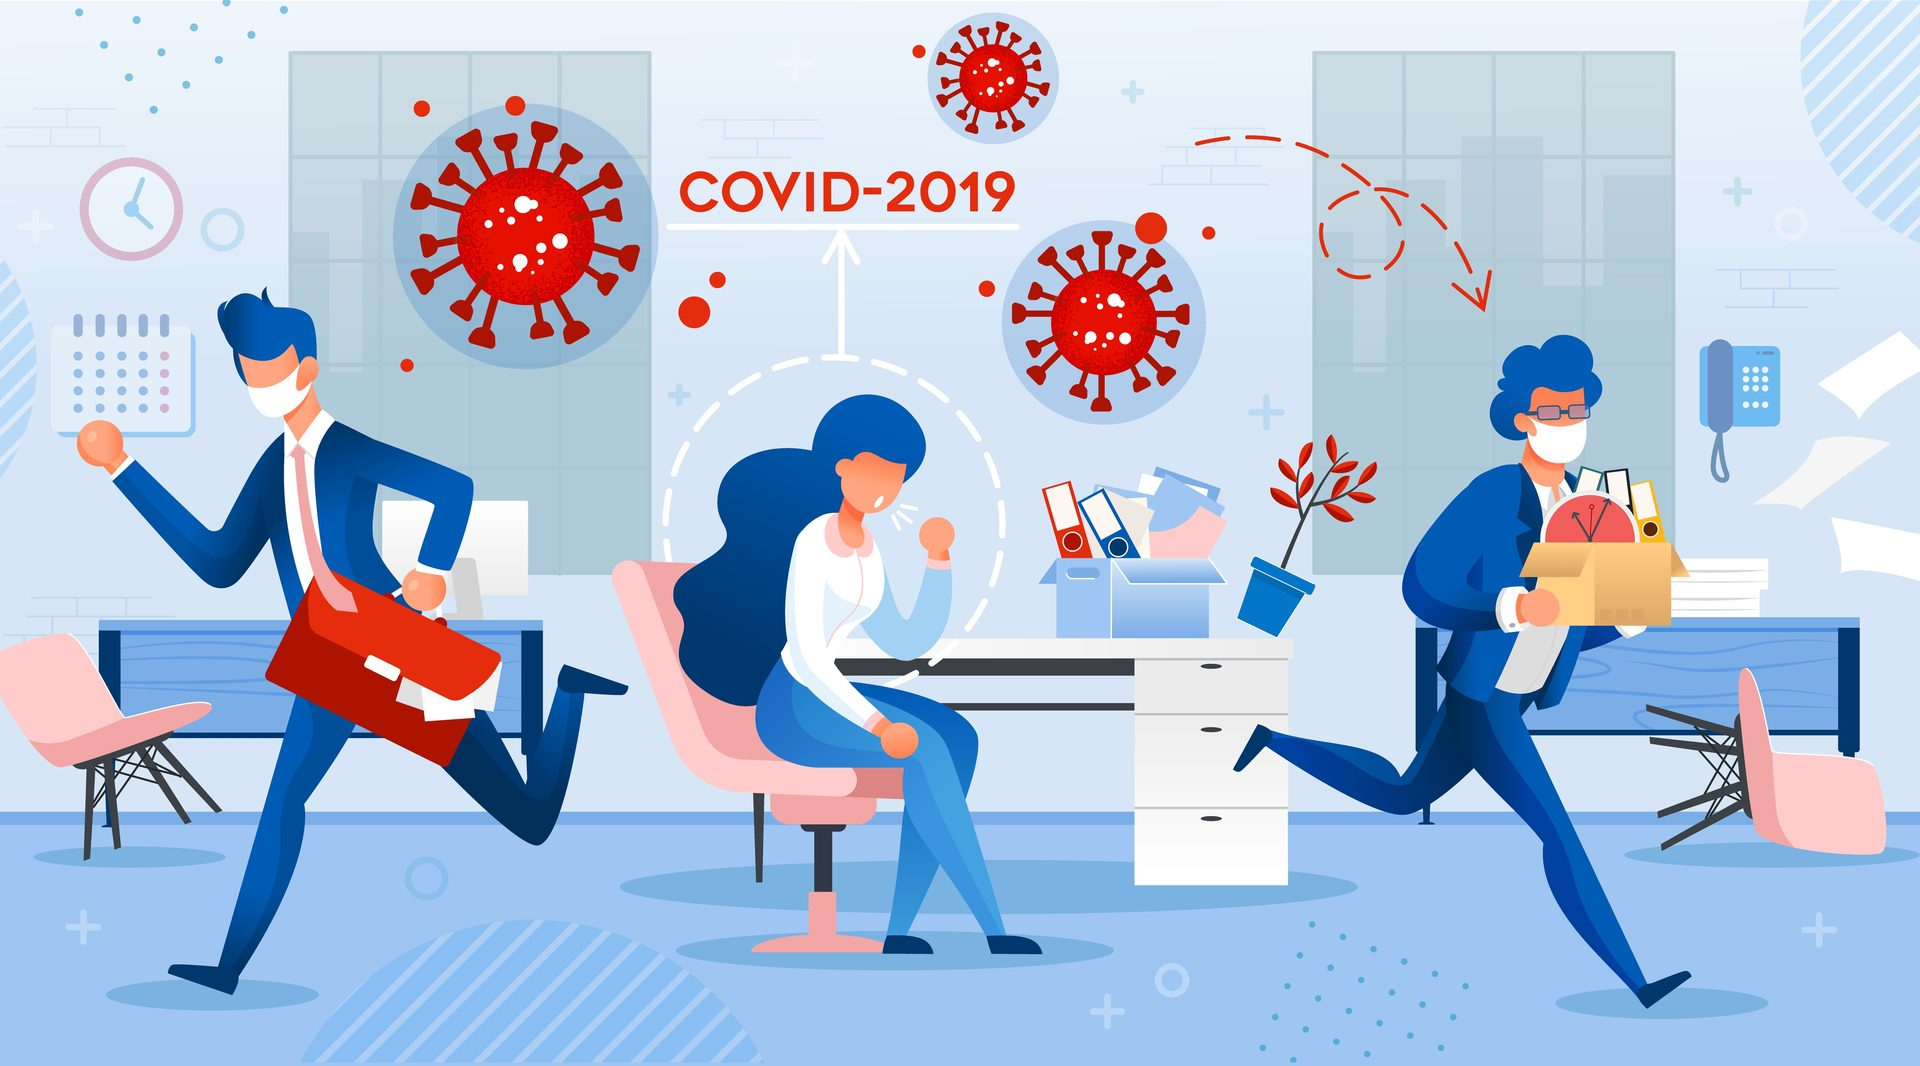 HOW DOES THE COLLISION OF THE COVID-19 PANDEMIC WITH WORKPLACES POSE SAFETY ISSUES FOR EMPLOYERS?